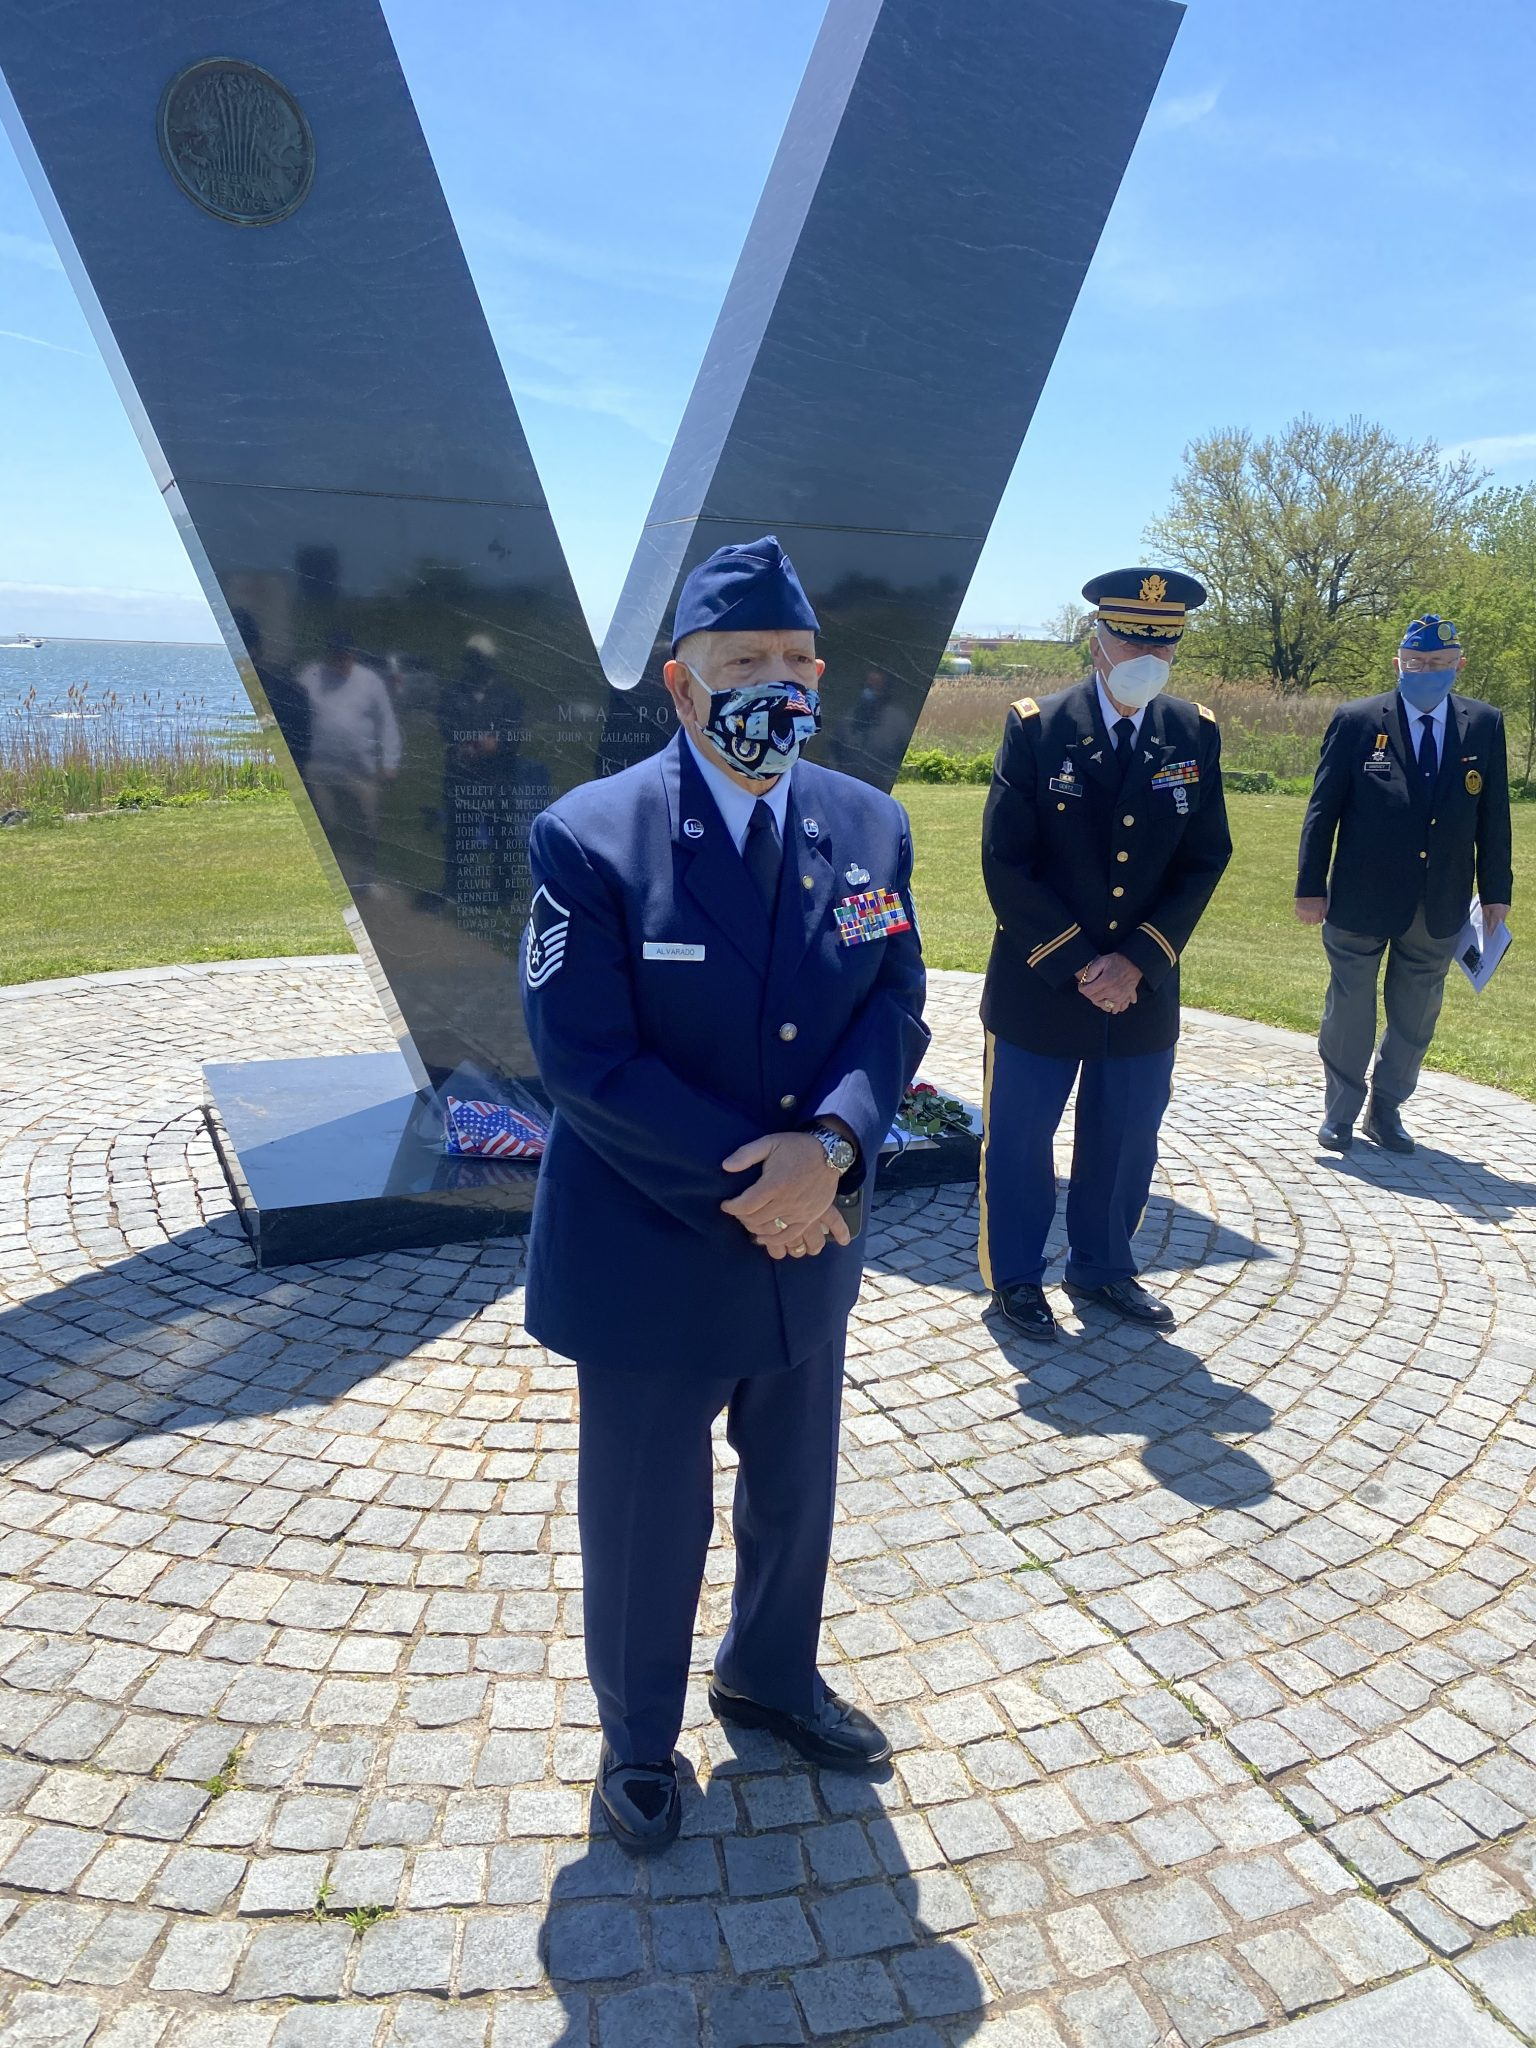 2020 Memorial Day Sunday Wreath Laying (COVID-19)